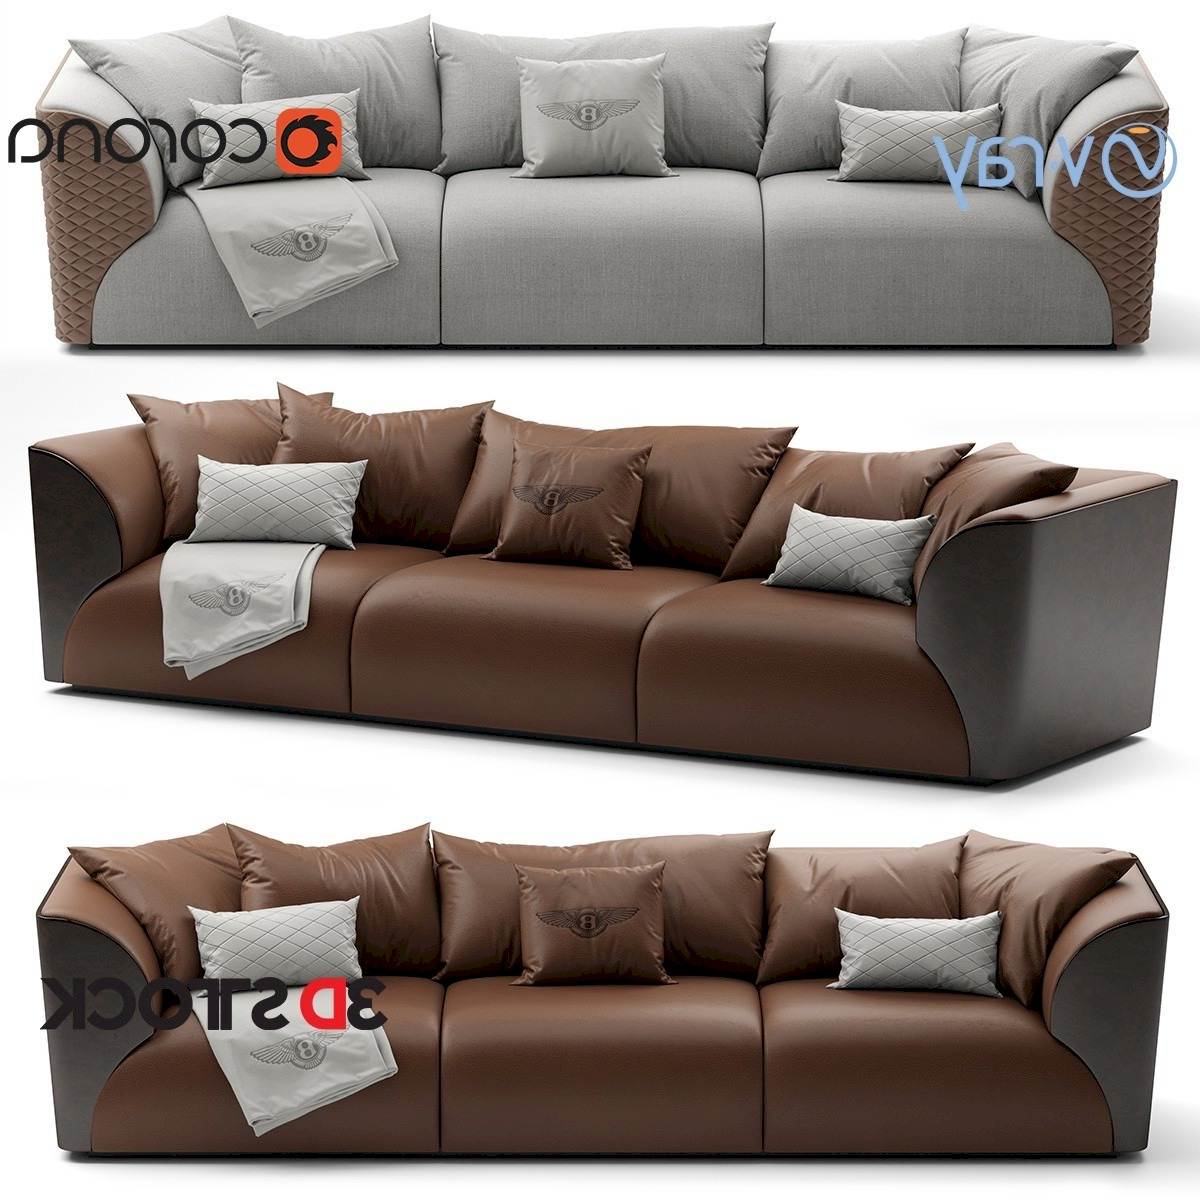 Bentley Home Winston Sofa – 3d Stock : 3d Models For Throughout Widely Used Winston Sofa Sectional Sofas (View 15 of 20)